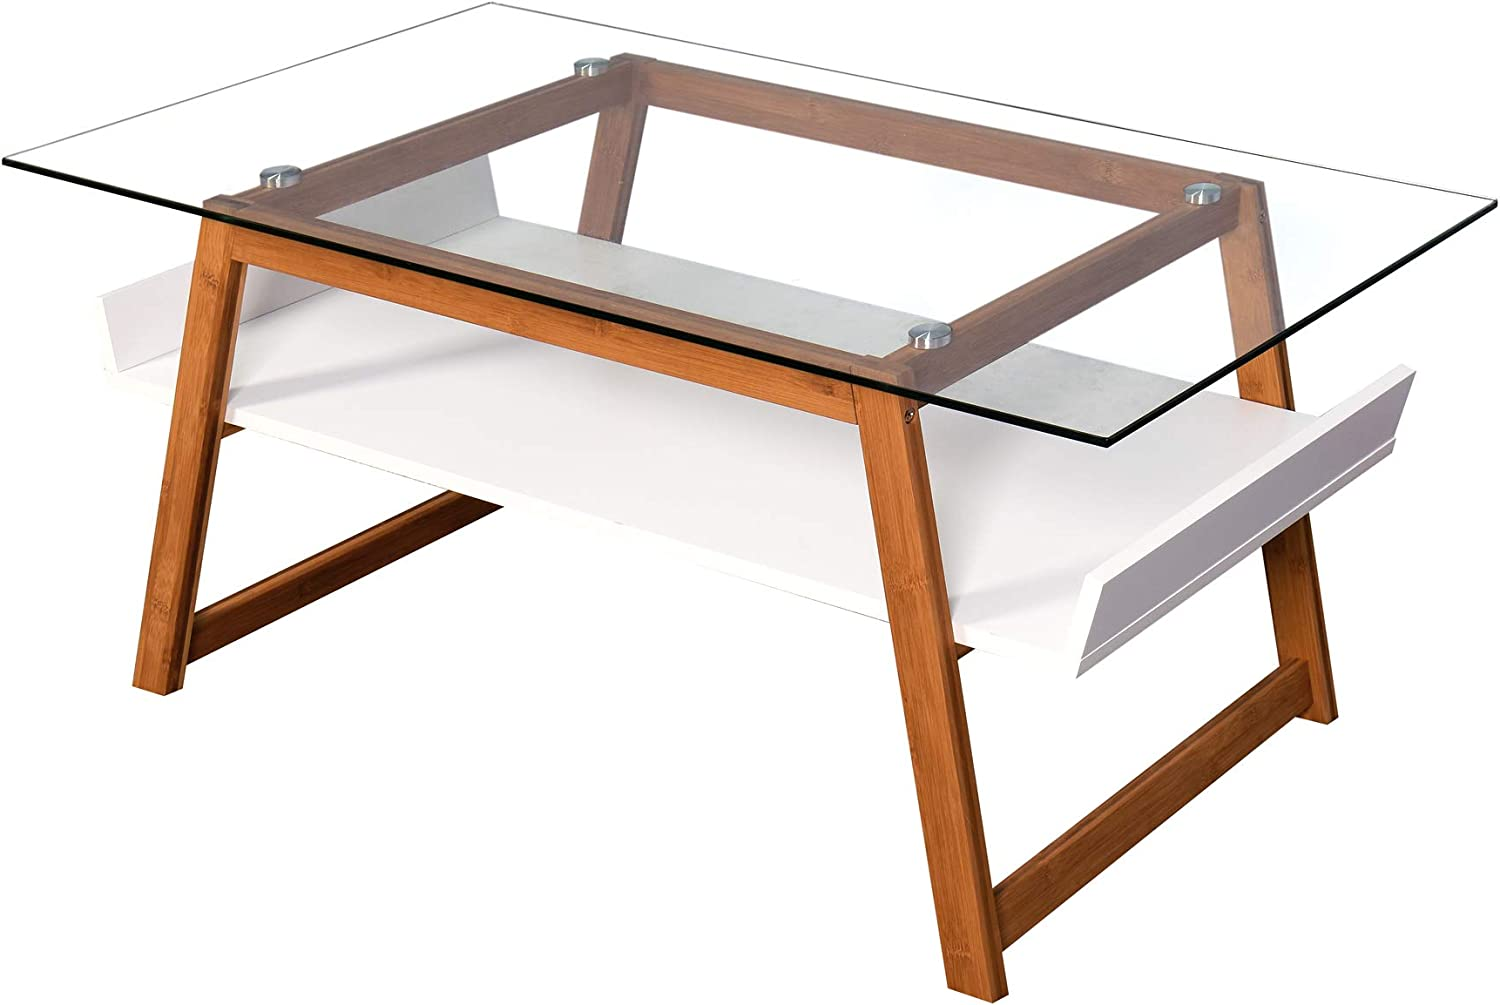 Glass Top Table Living Room Direct stock discount Modern Coffee 5 ☆ very popular Design 43.3x 19